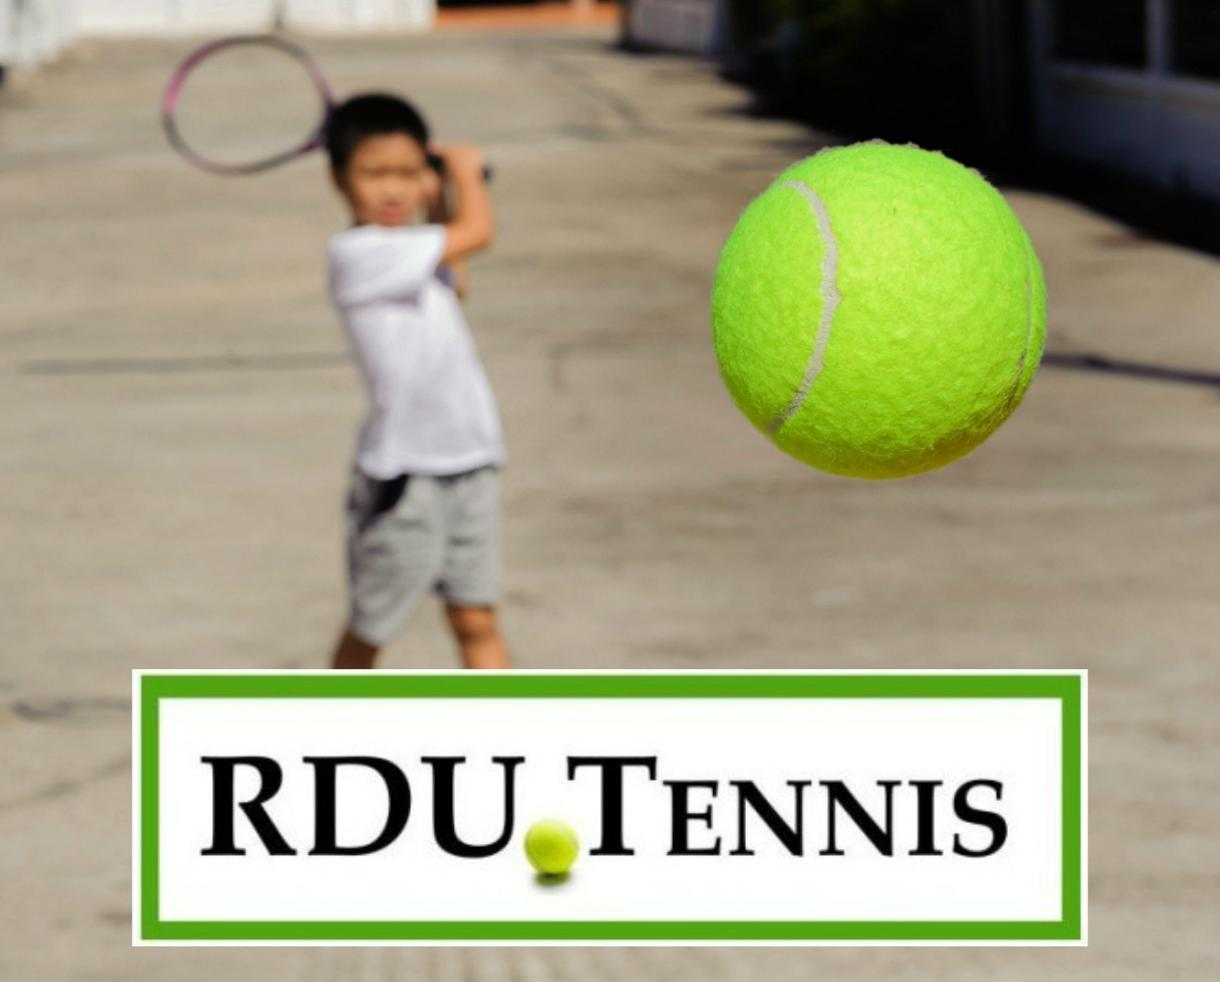 $55 for RDU Tennis Spring Clinic for Ages 5-14 at American University - Washington, DC (32% Off)